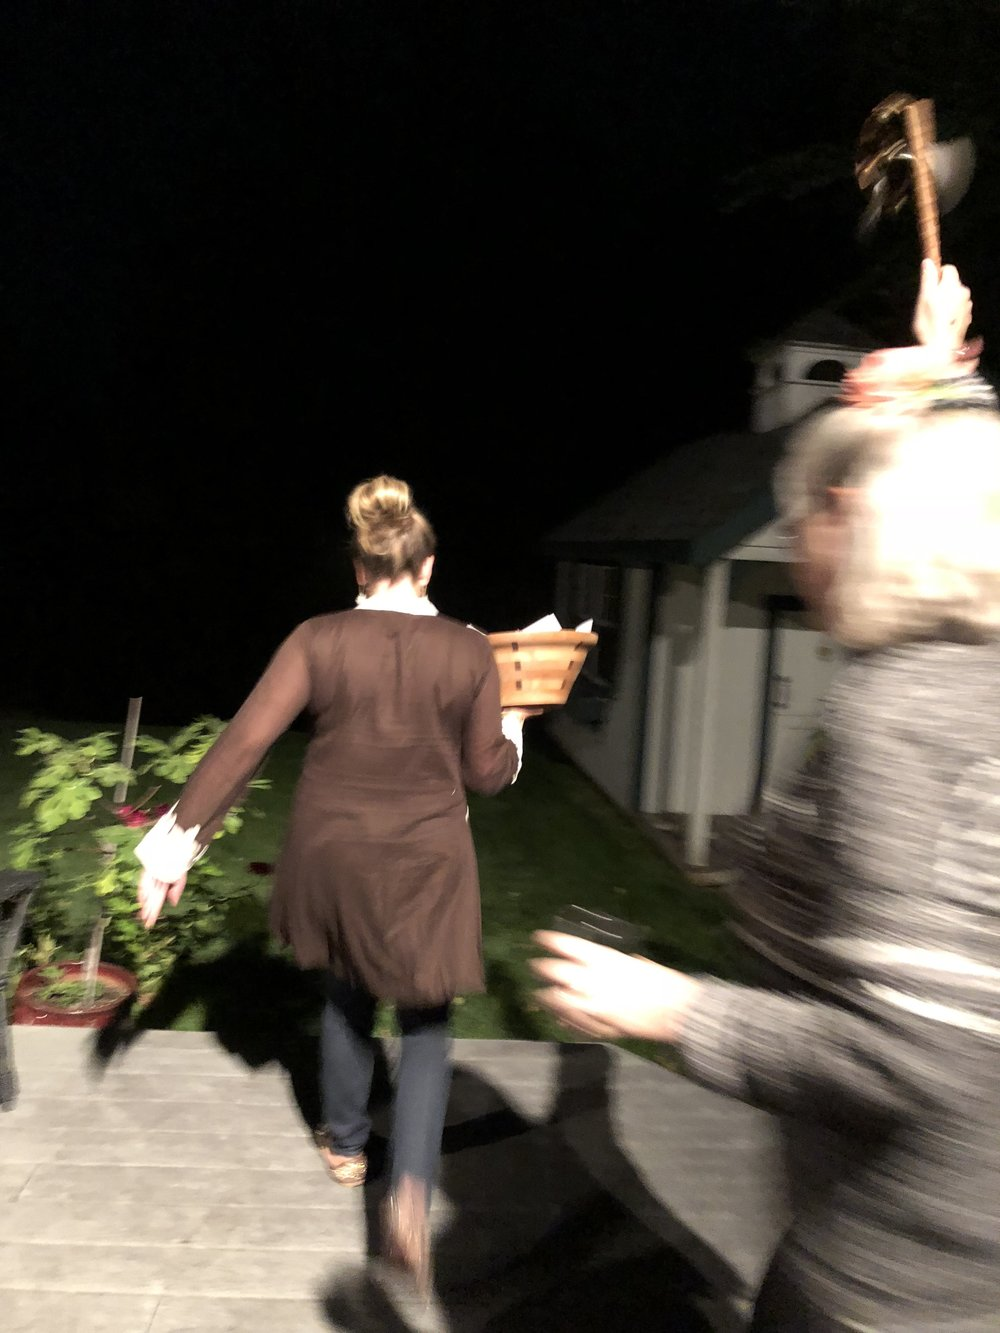 Amy leads the charge as Caren leads the revelry. Our dreams and wishes come with us!